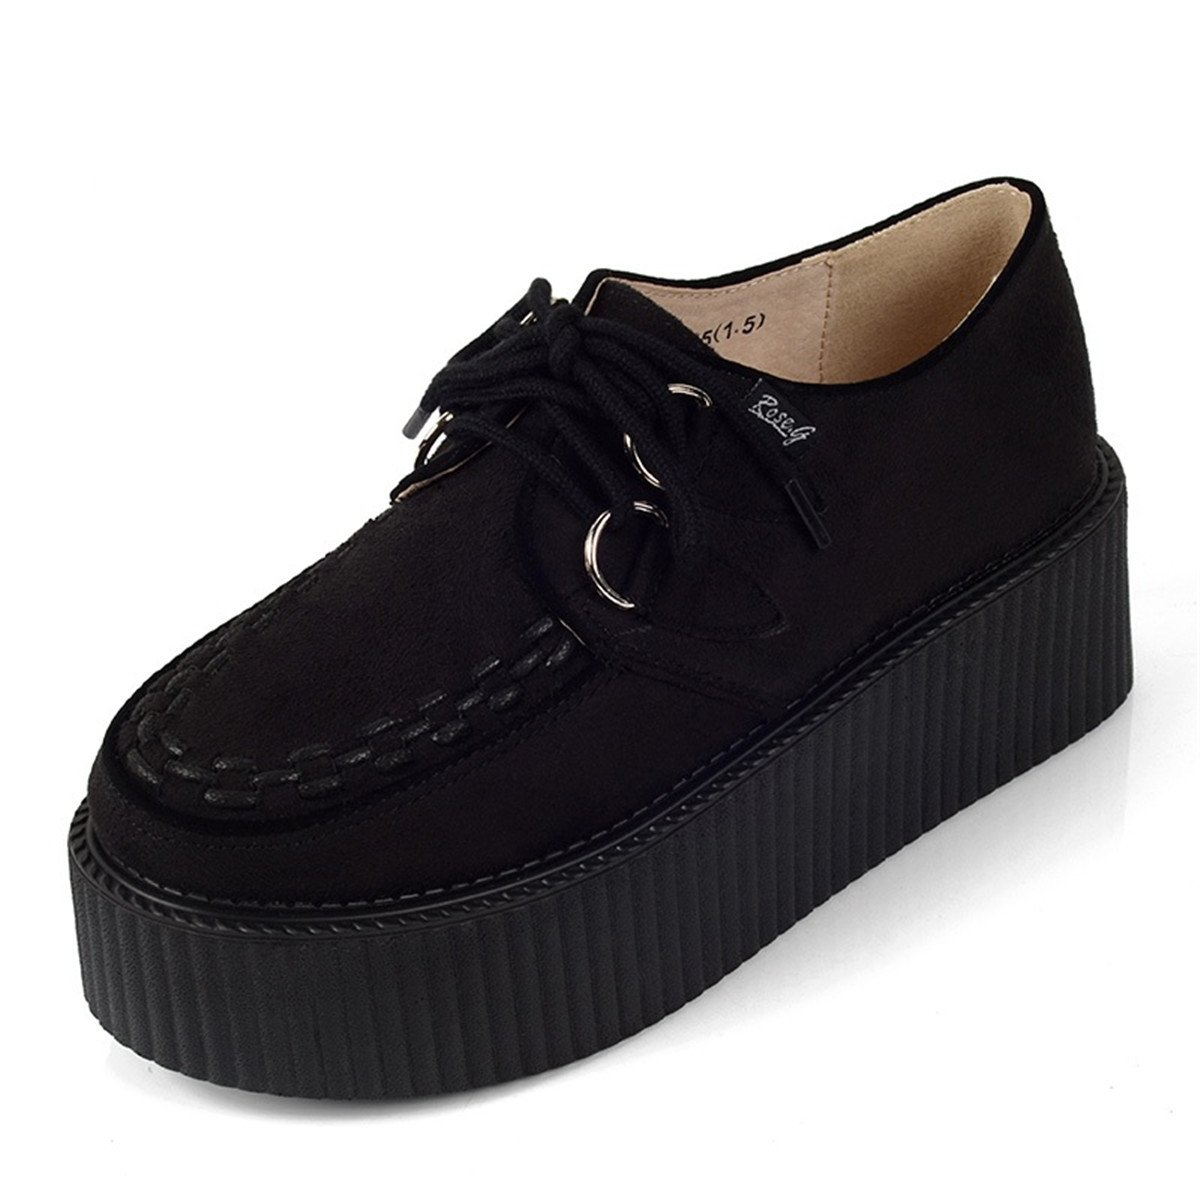 RoseG Femmes Lacets Plate Plate Forme Gothique Punk Punk Creepers Casual Creepers Chaussures Noir 97db3a2 - piero.space